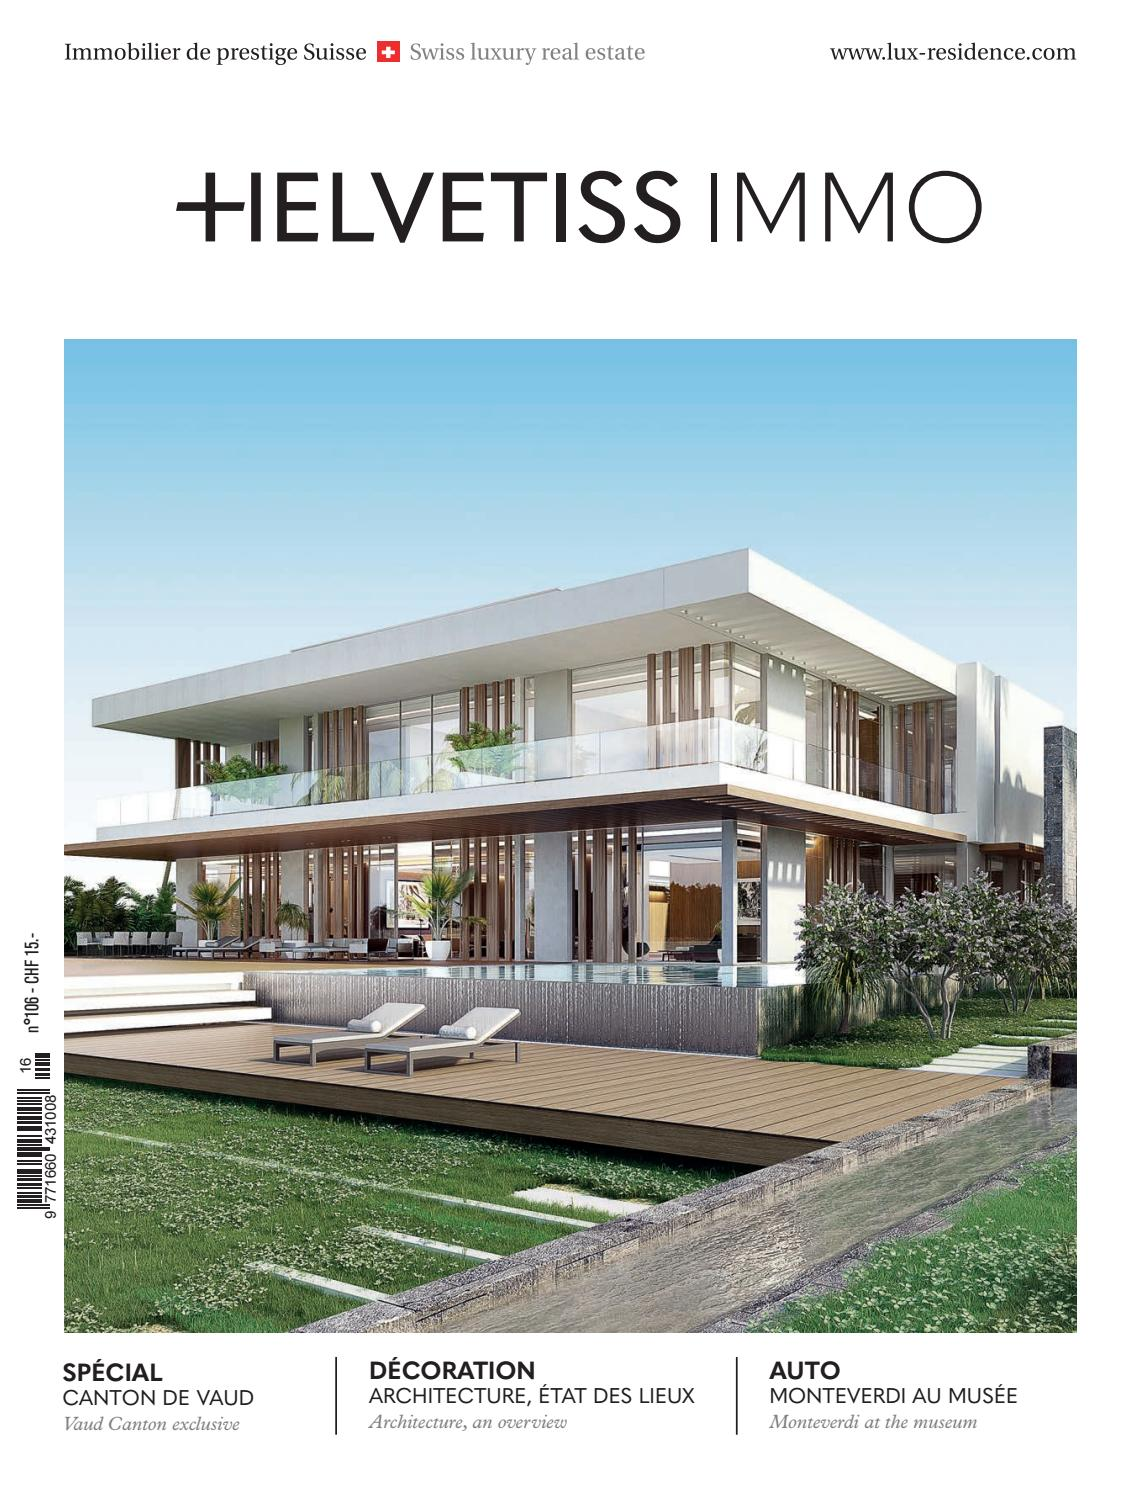 Salon Jardin Modulable Génial Helvetissimmo H106 Septembre 2017 by Helvetissimmo Luxury Of 32 Beau Salon Jardin Modulable